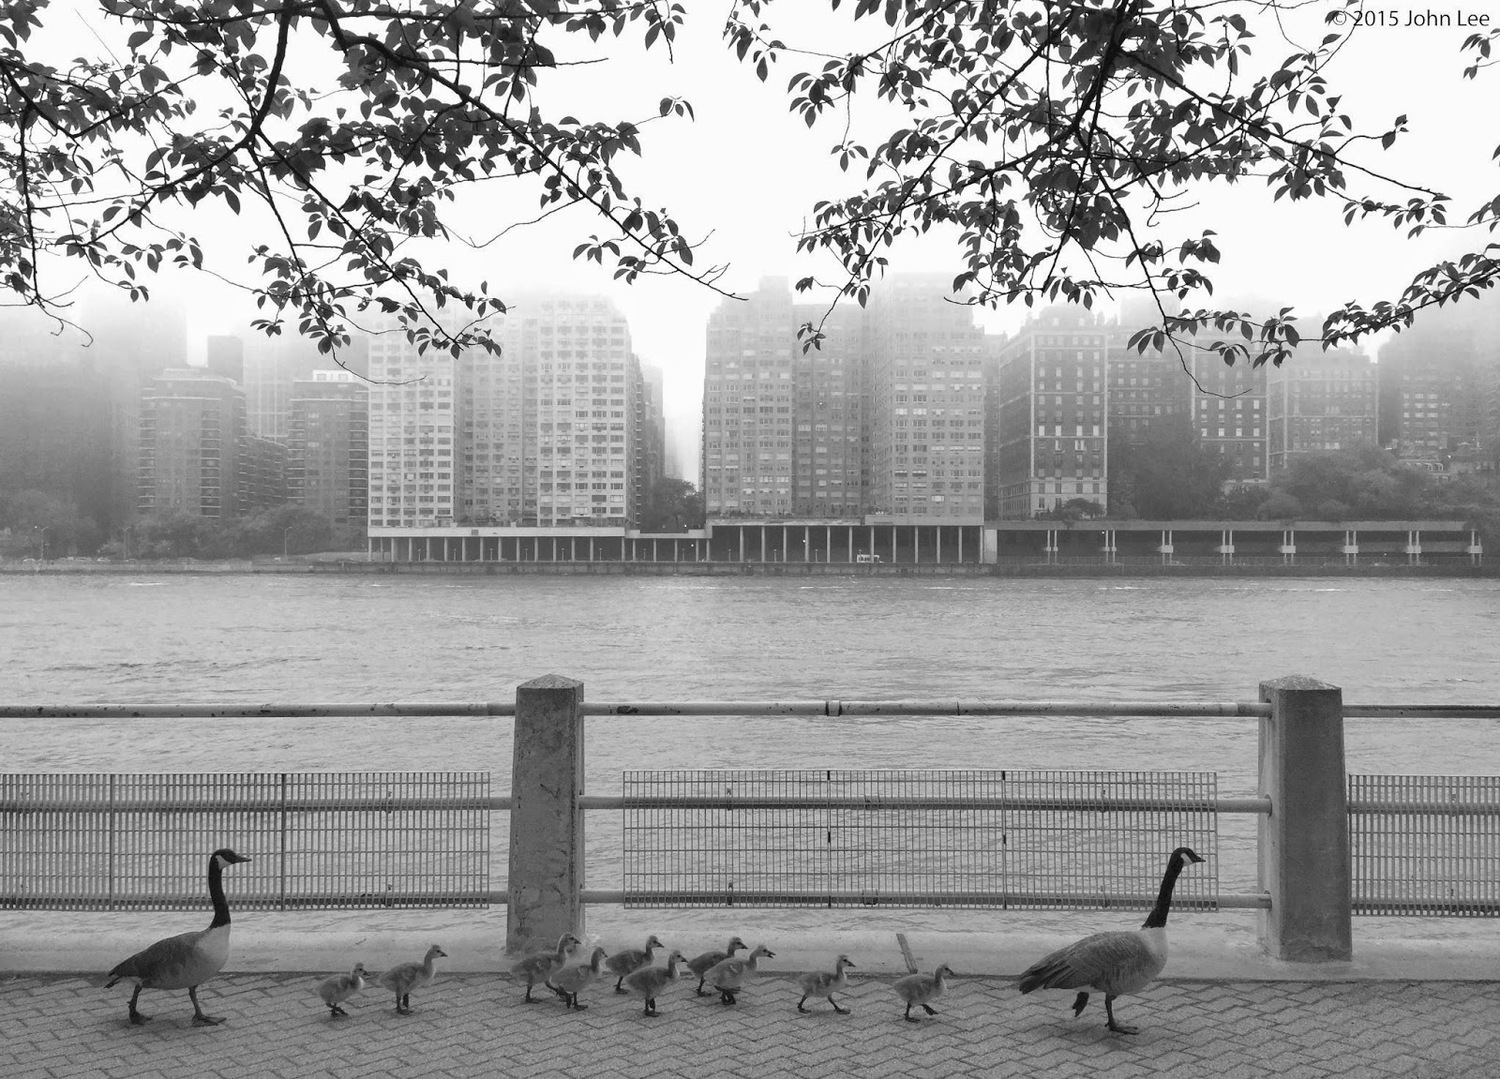 Roosevelt Island duck family strolls East River Promenade on a foggy morning today